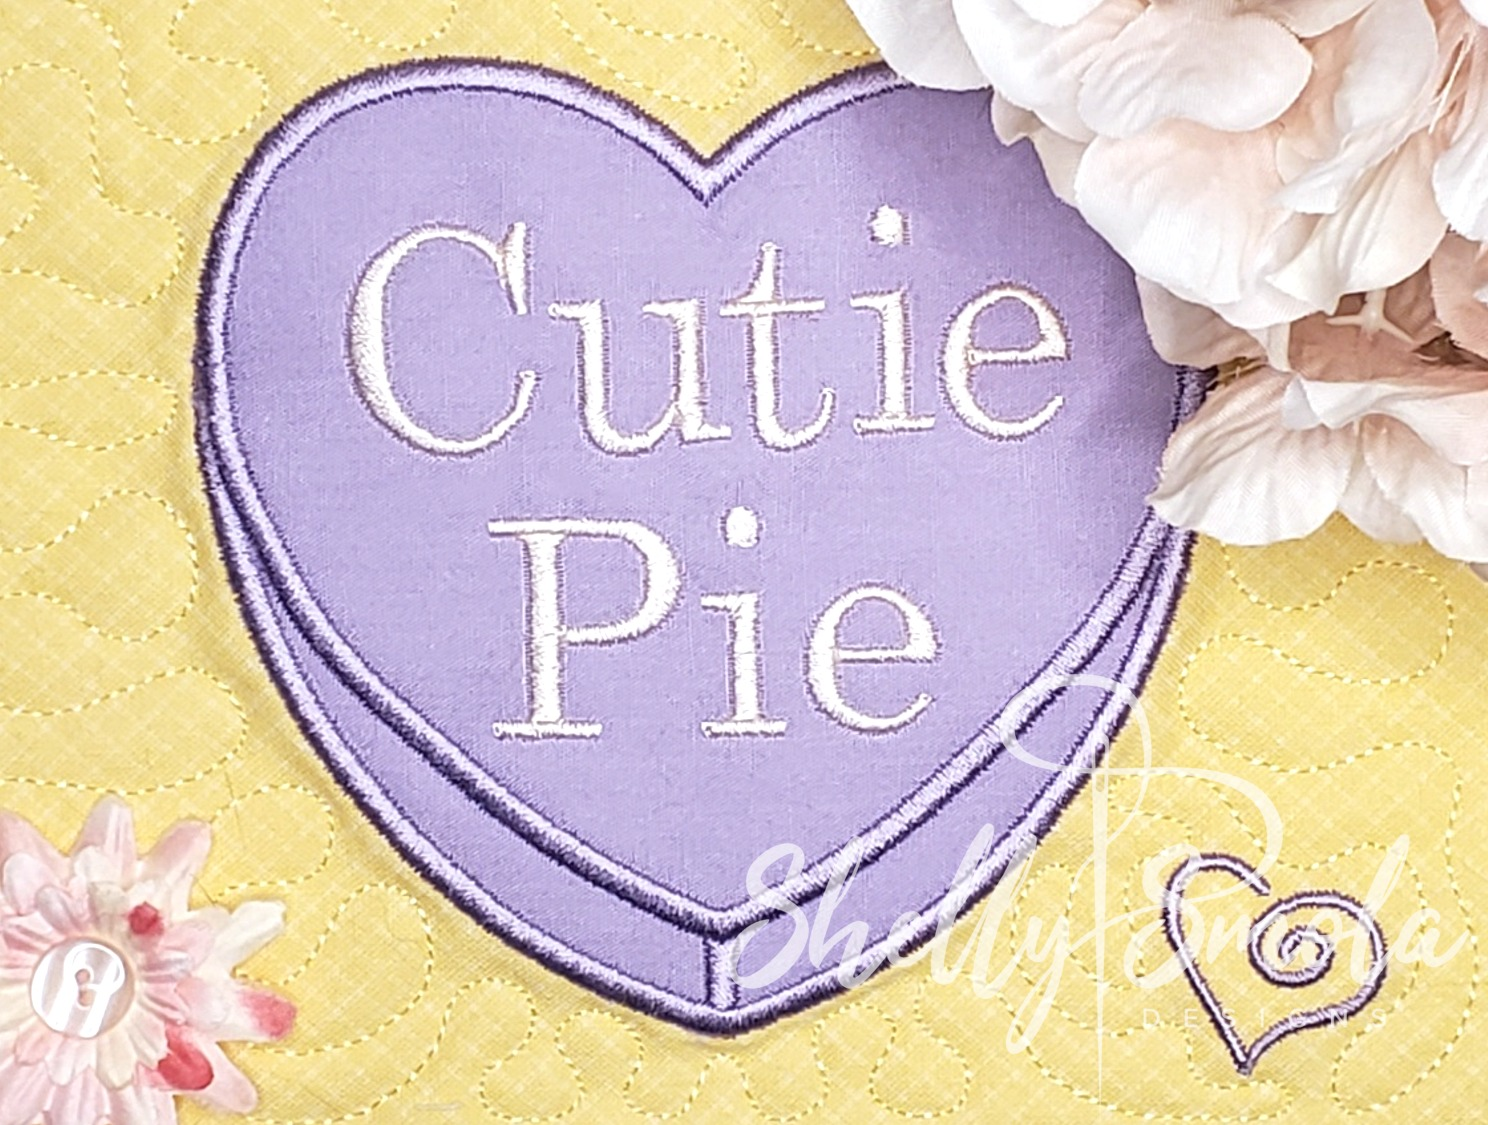 Cuite Pie Candy Heart by Shelly Smola